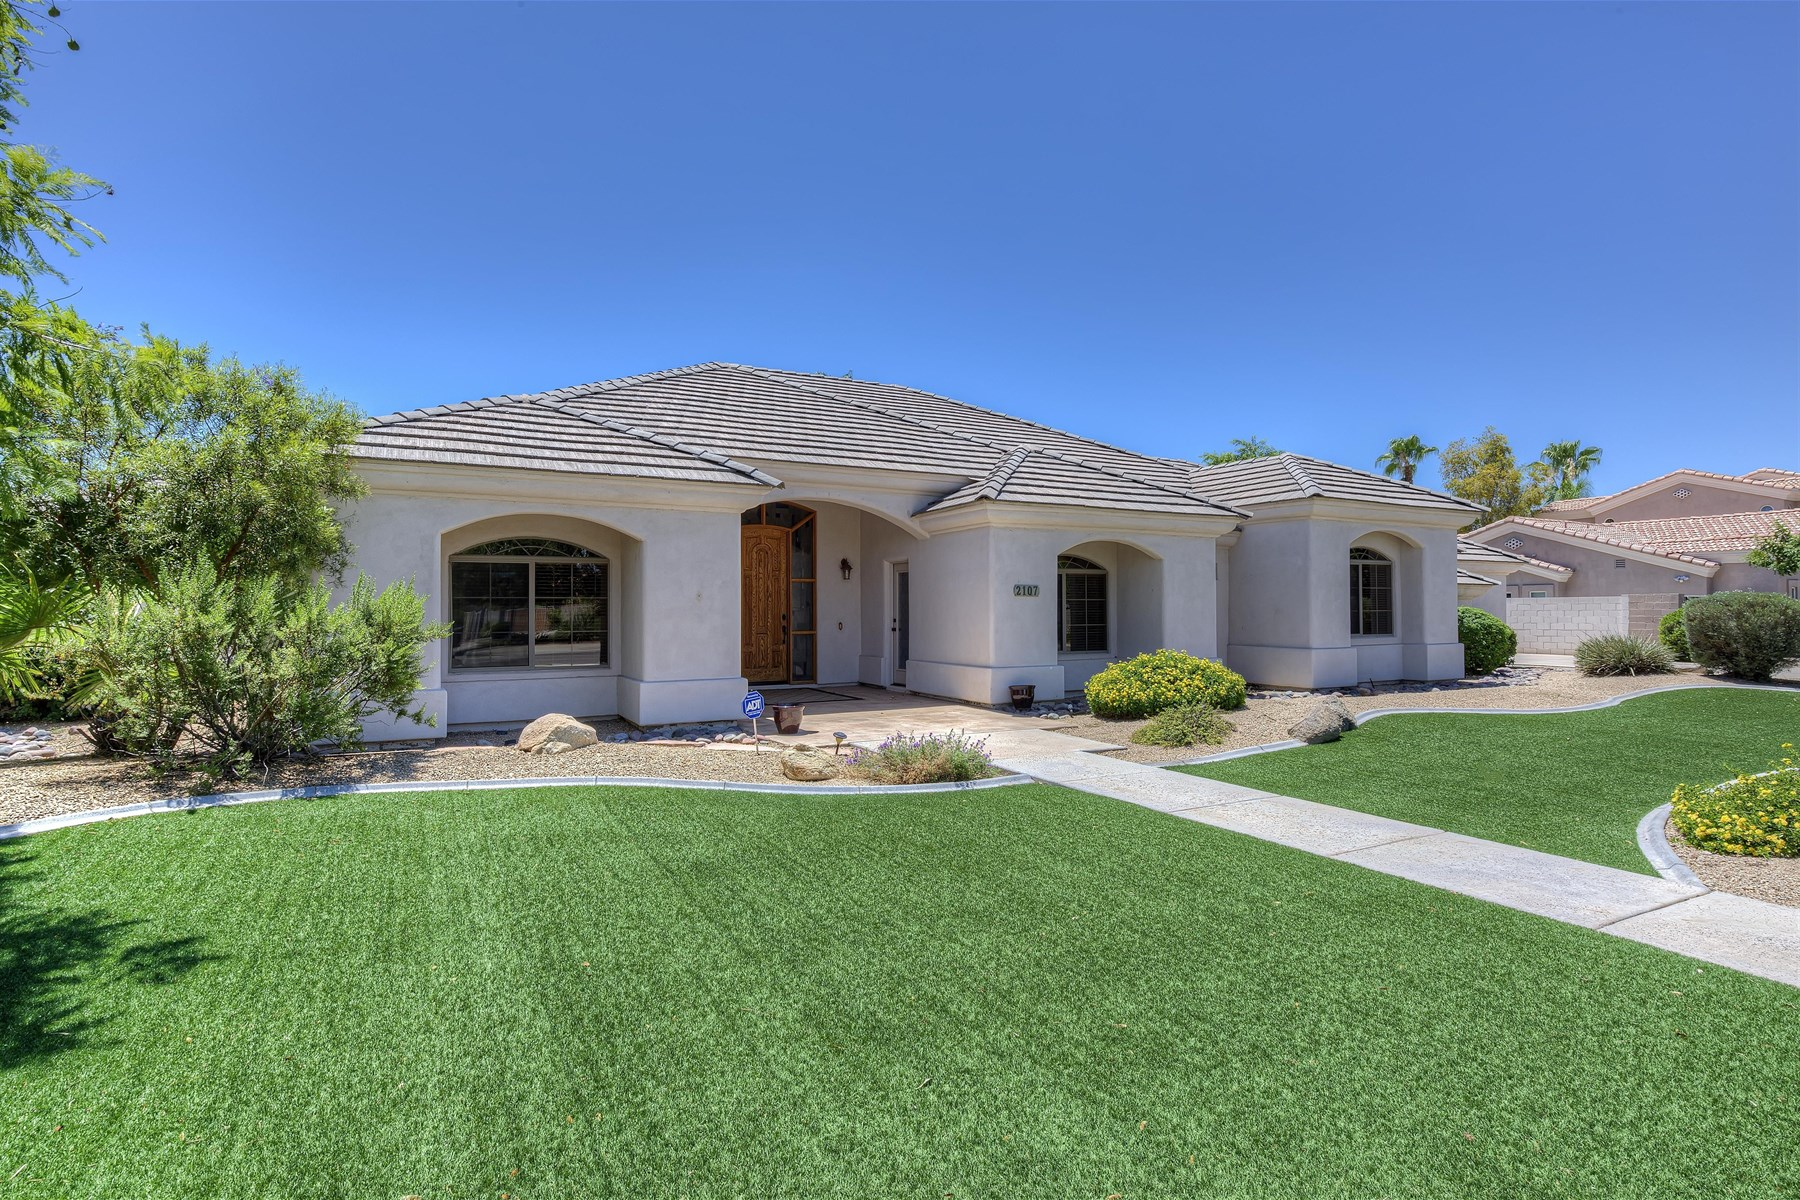 Property For Sale at Easy living in the much sought after Groves of Hermosa Vista neighborhood.